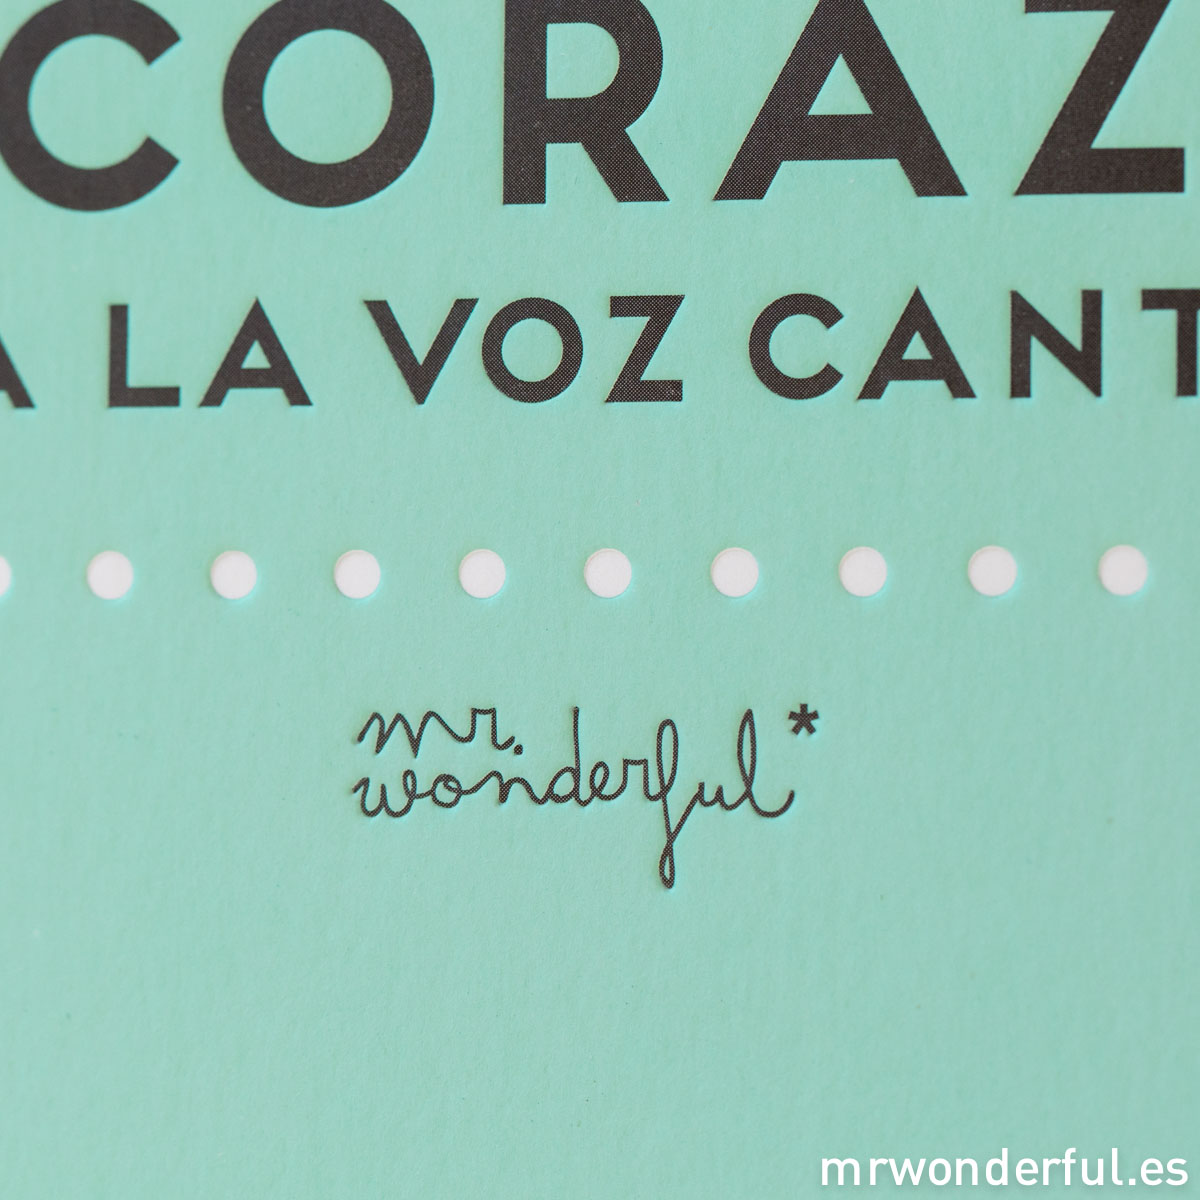 mrwonderful_LAM-RELIEVE-13-MARCO_casa-corazon-lleva-19